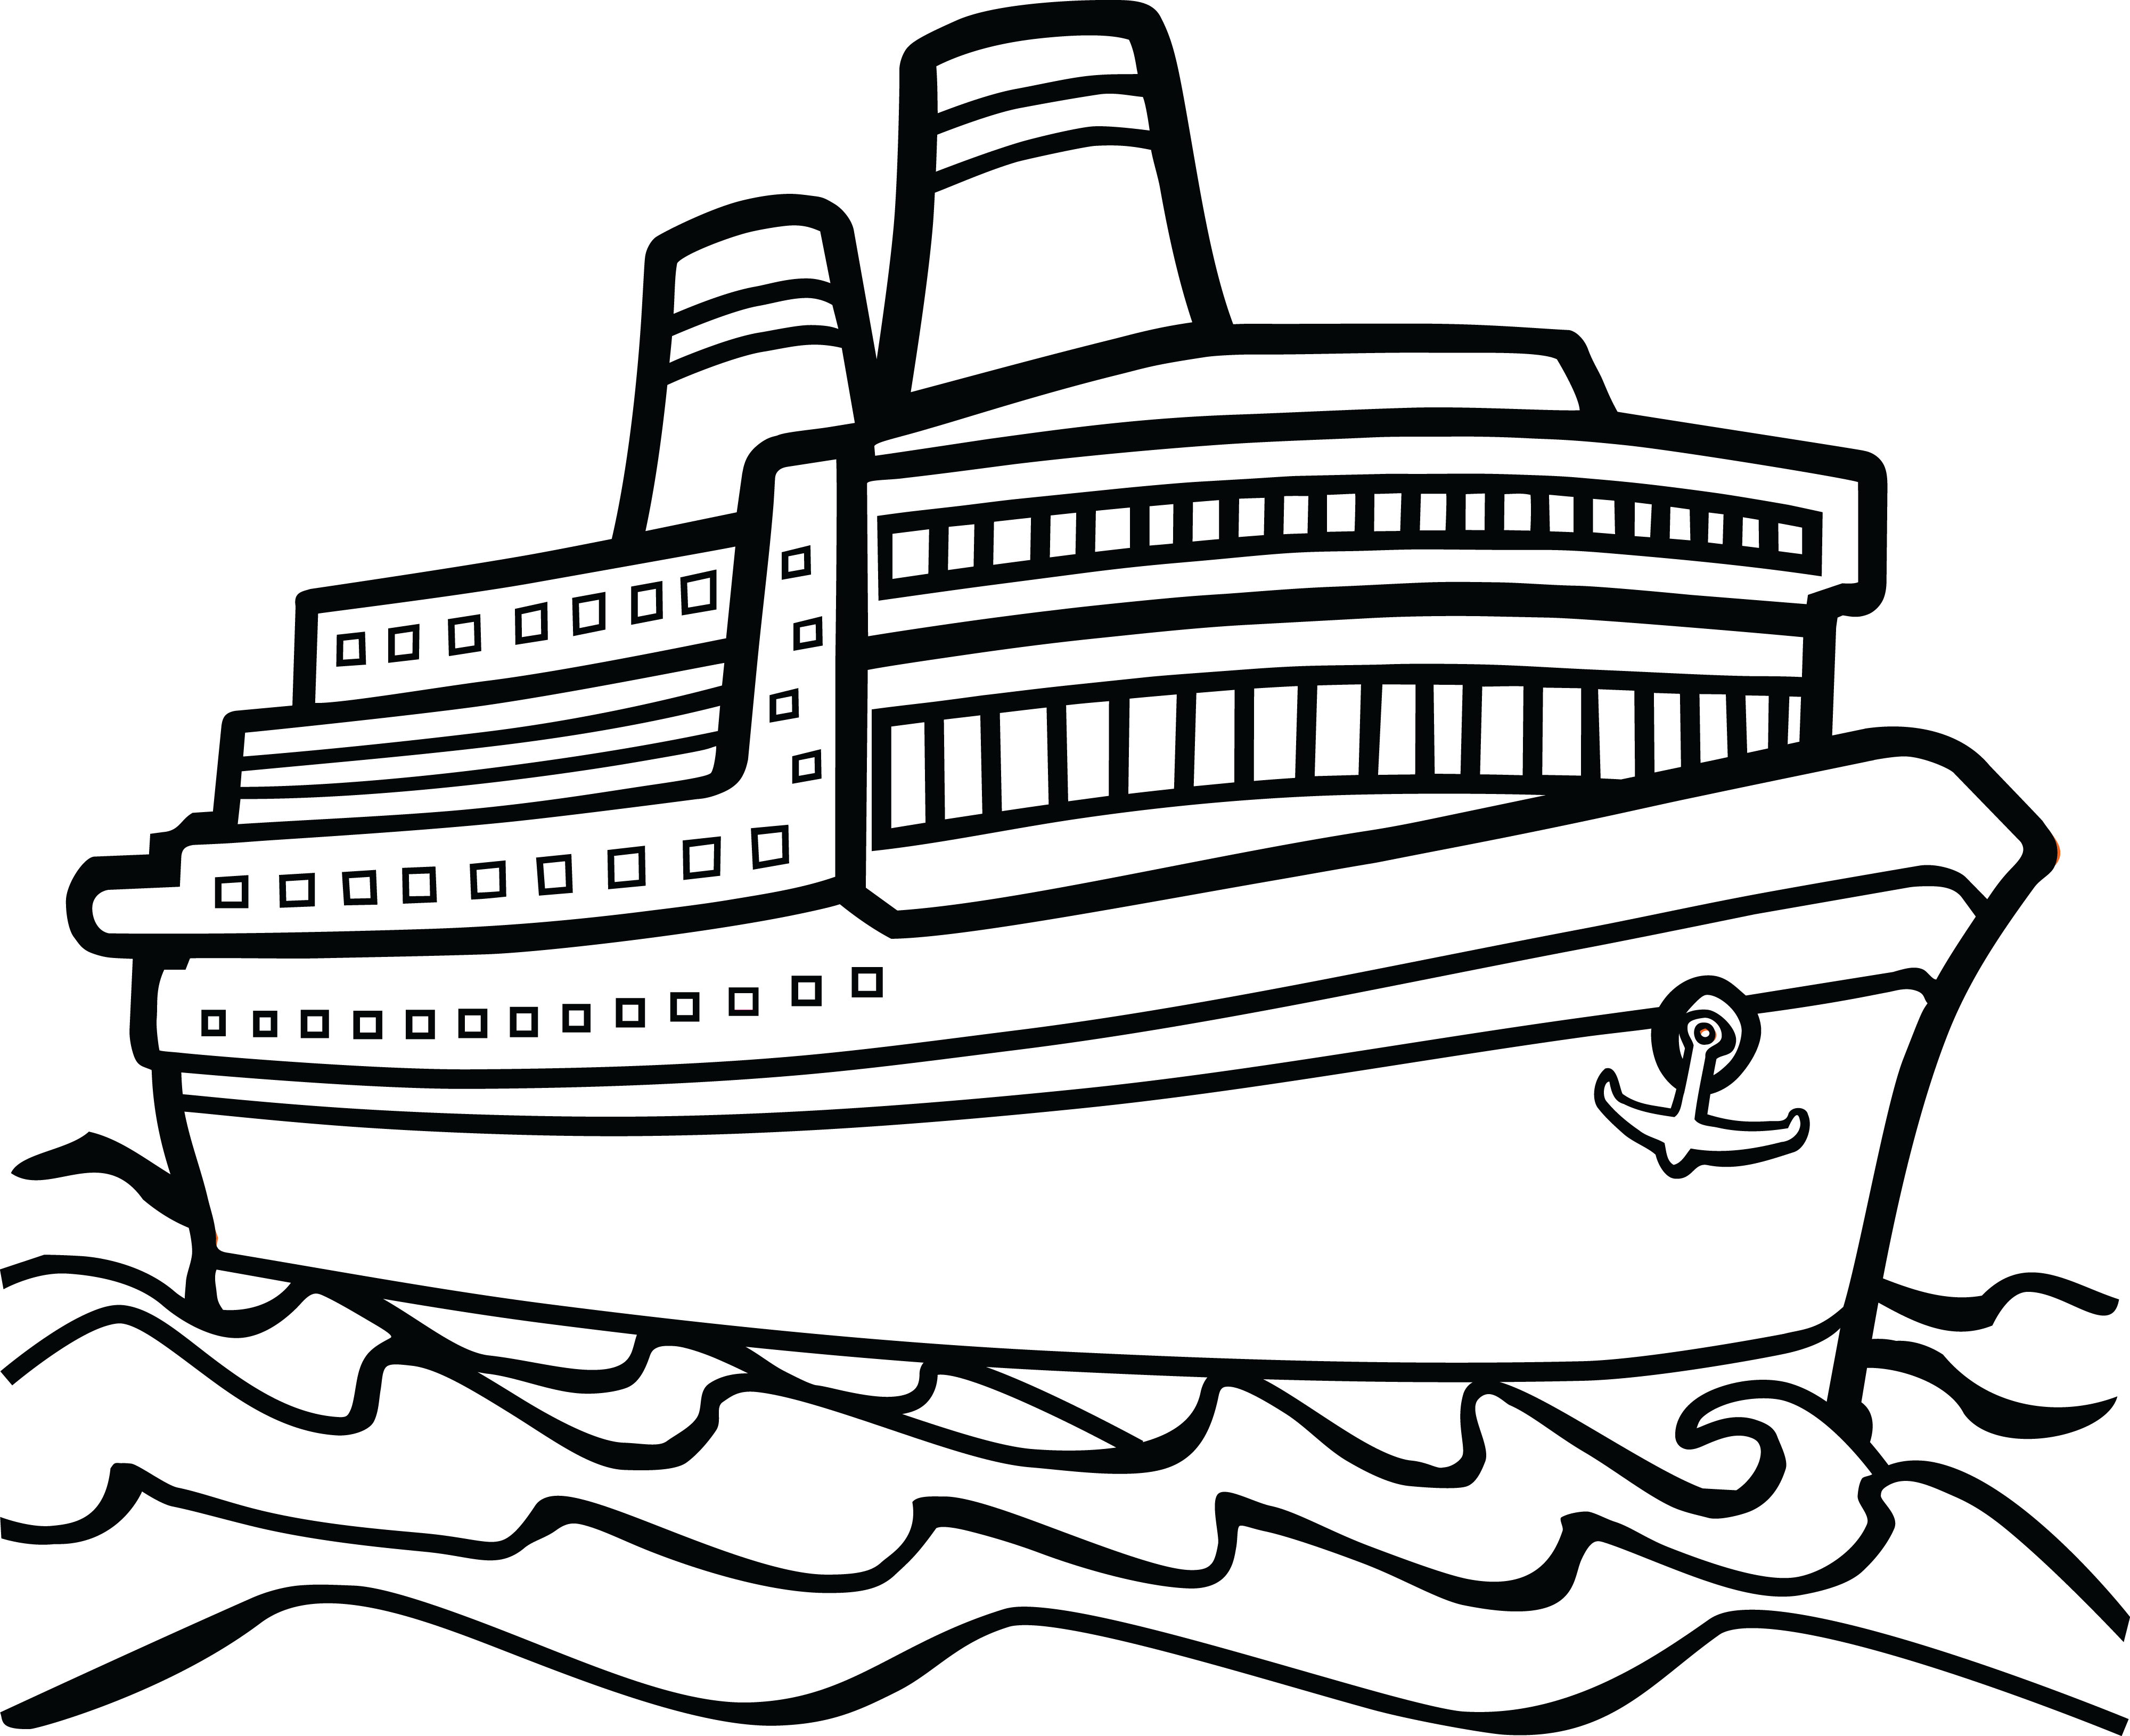 Clipart boat black and white clip art free library Boat clipart black and white clipart images gallery for free ... clip art free library